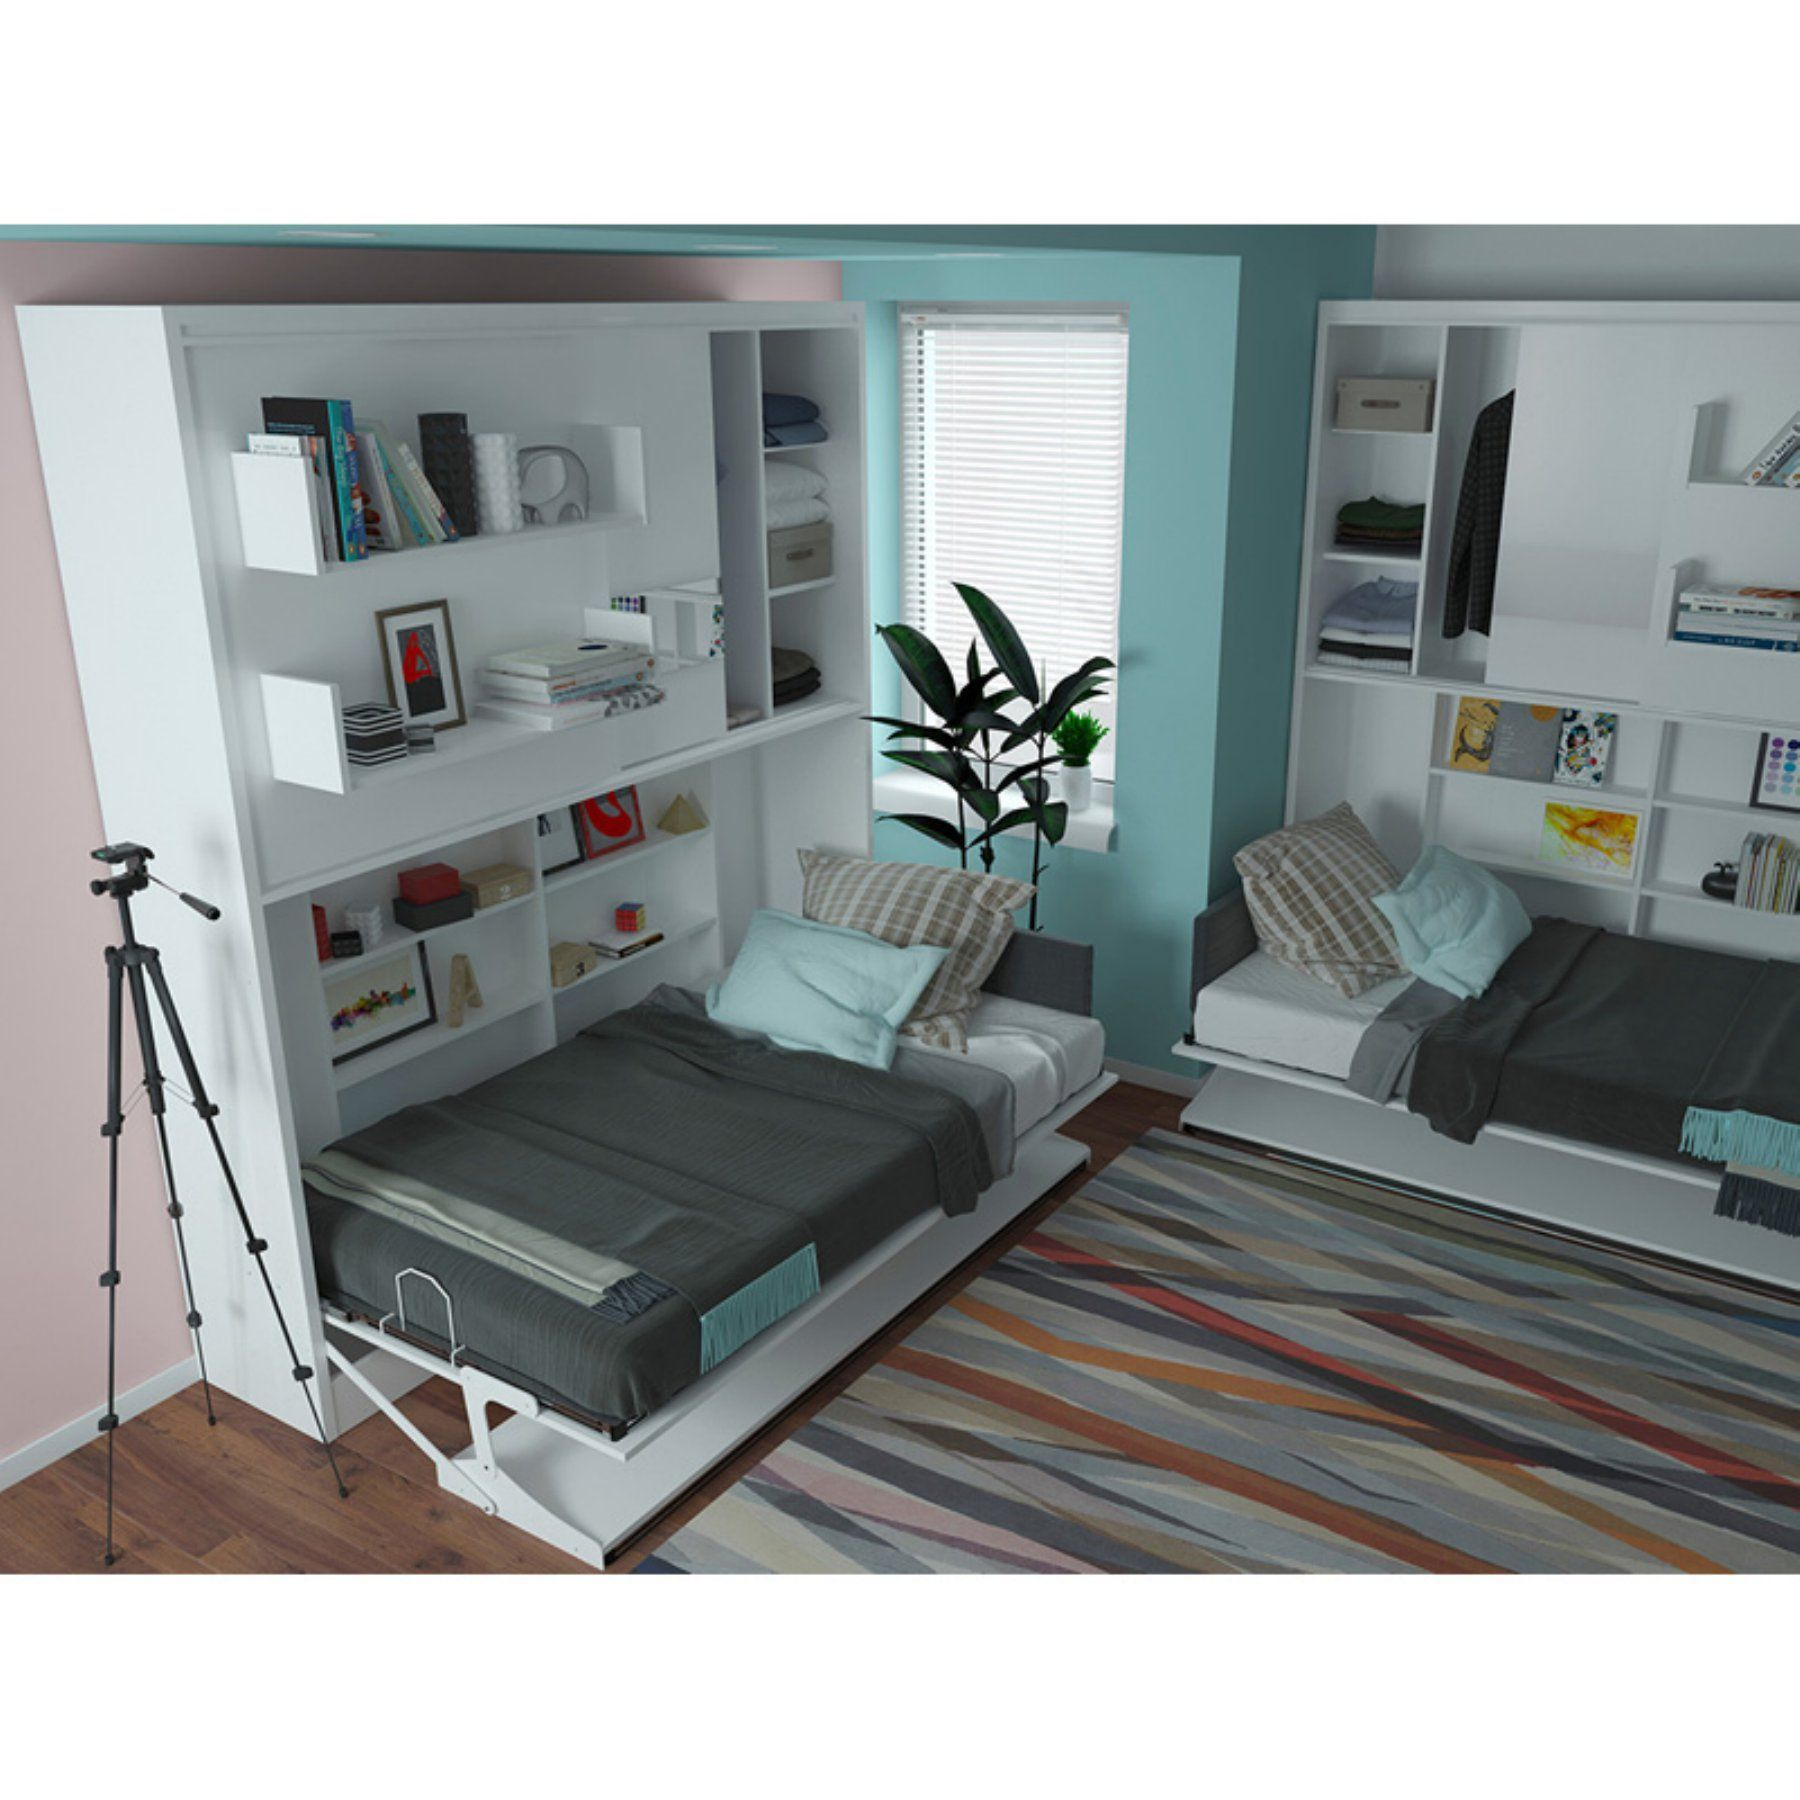 Multimo Parete Letto T Wall Bed System with Table